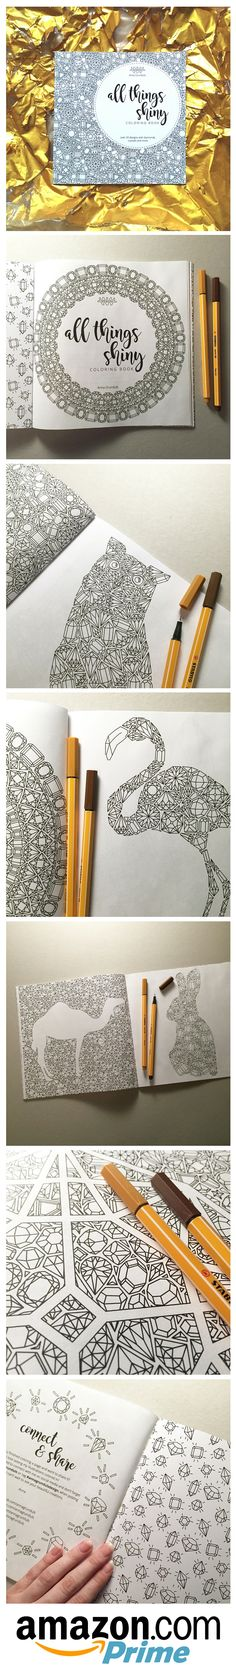 Coloring postcards set of 10, coloring stationery, coloring page - new animal coloring pages with patterns